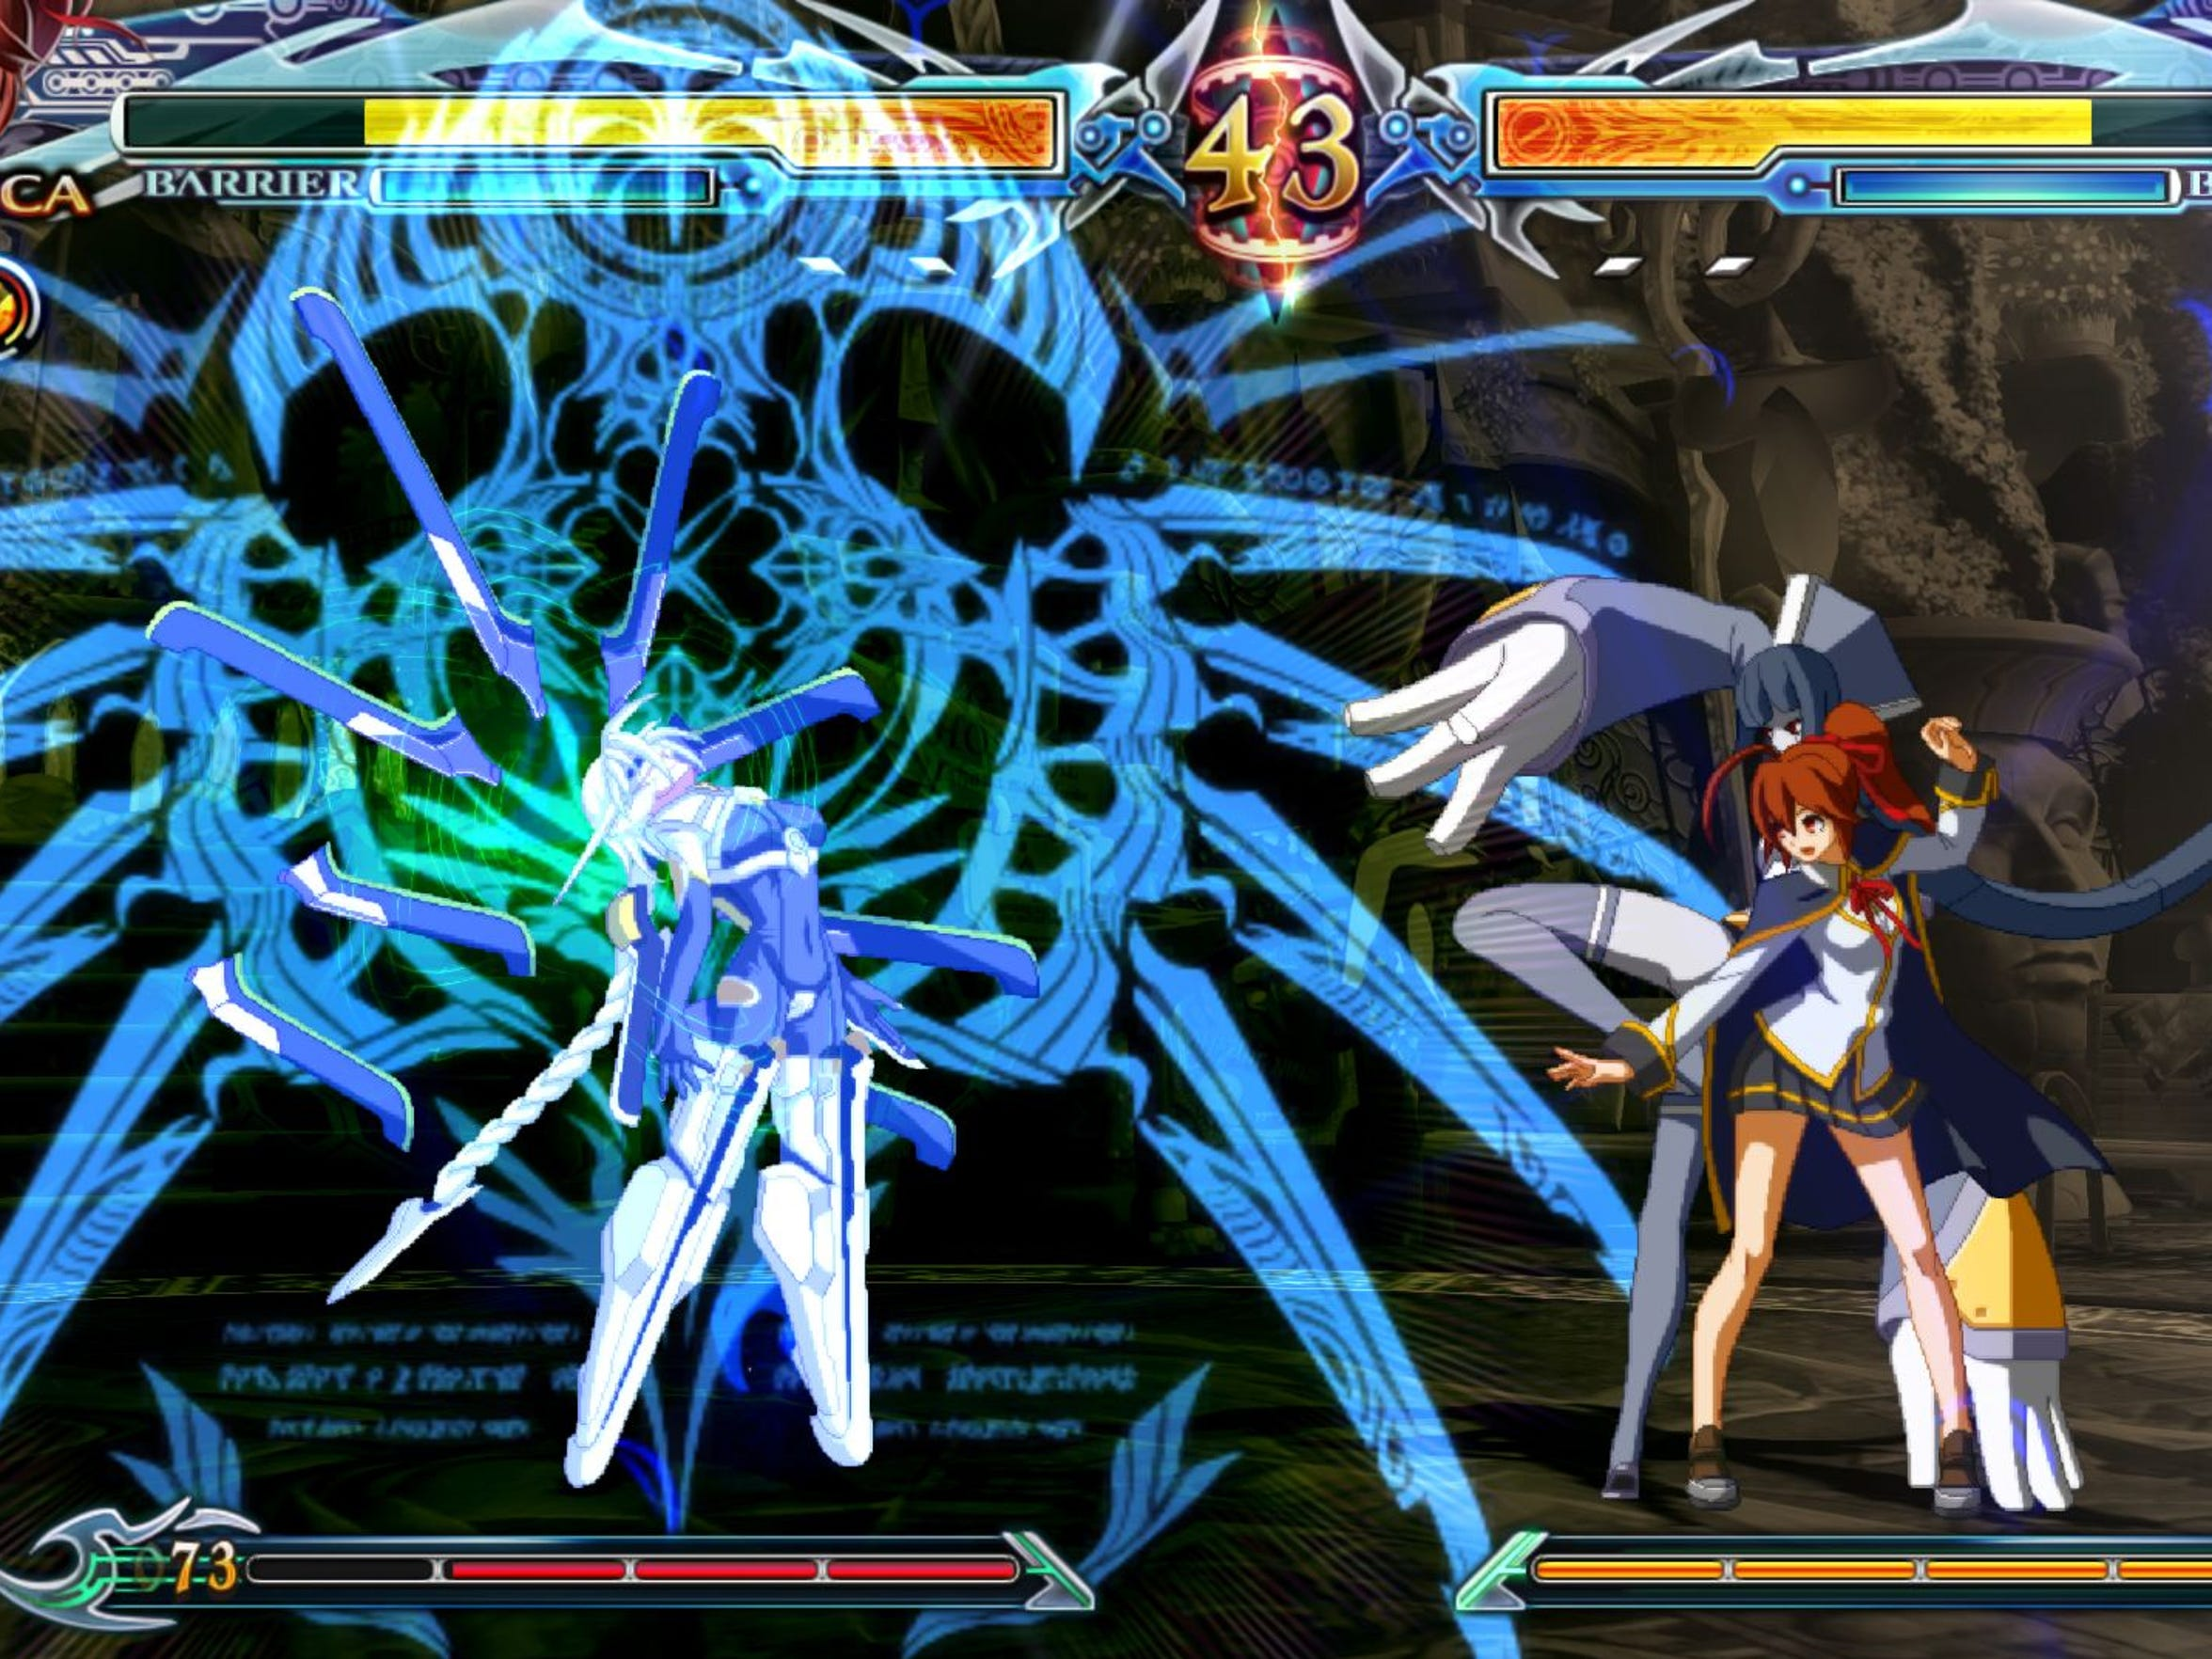 Celica A. Mercury is one of the new additions to BlazBlue: